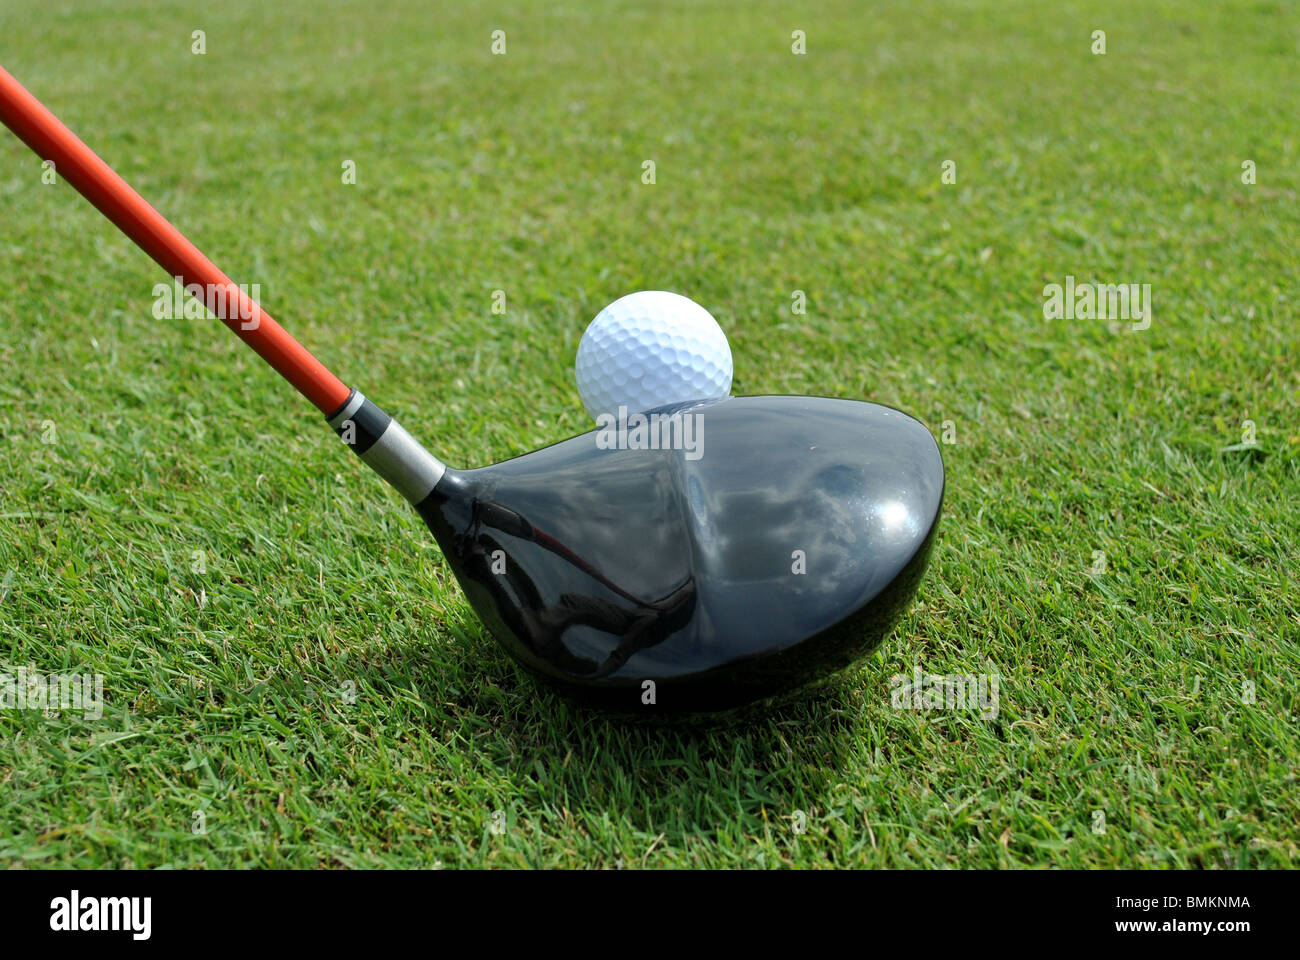 ready to tee off - Stock Image